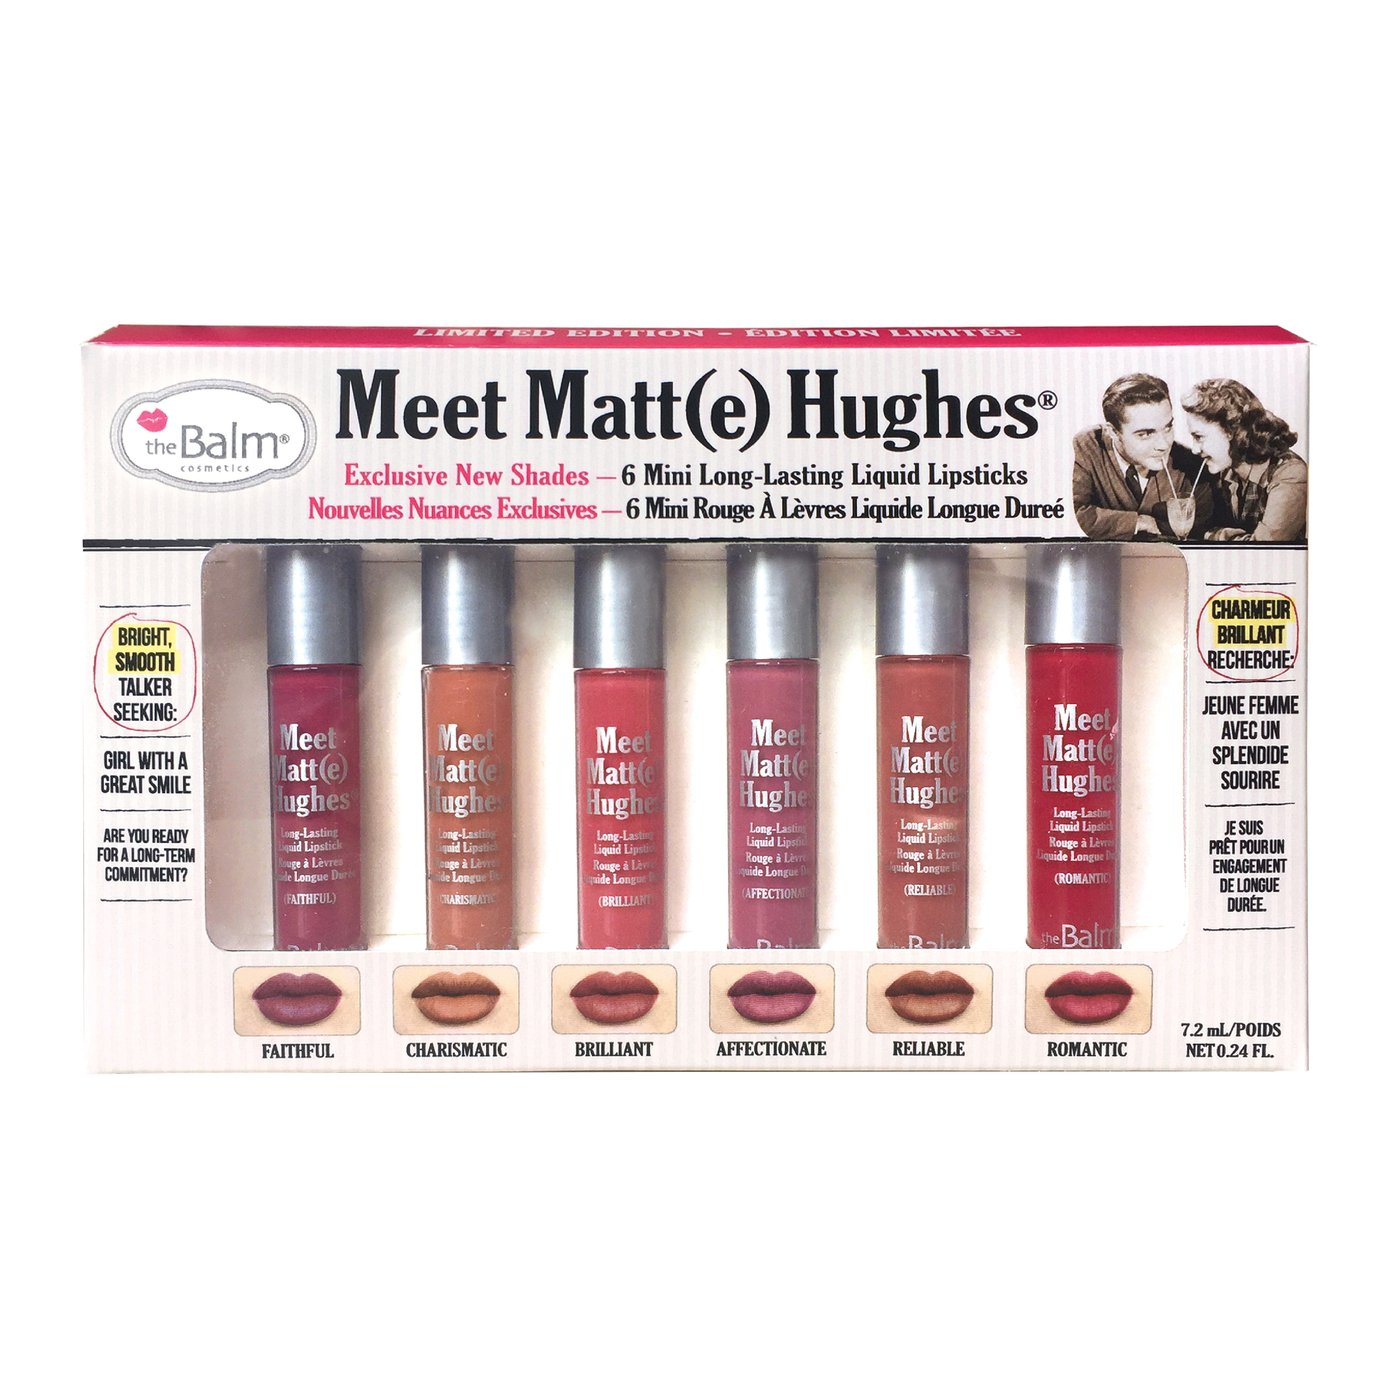 theBalm Meet Matt(e) Hughes Lipsticks Kit - Vol 2 - Cosmetics Diary